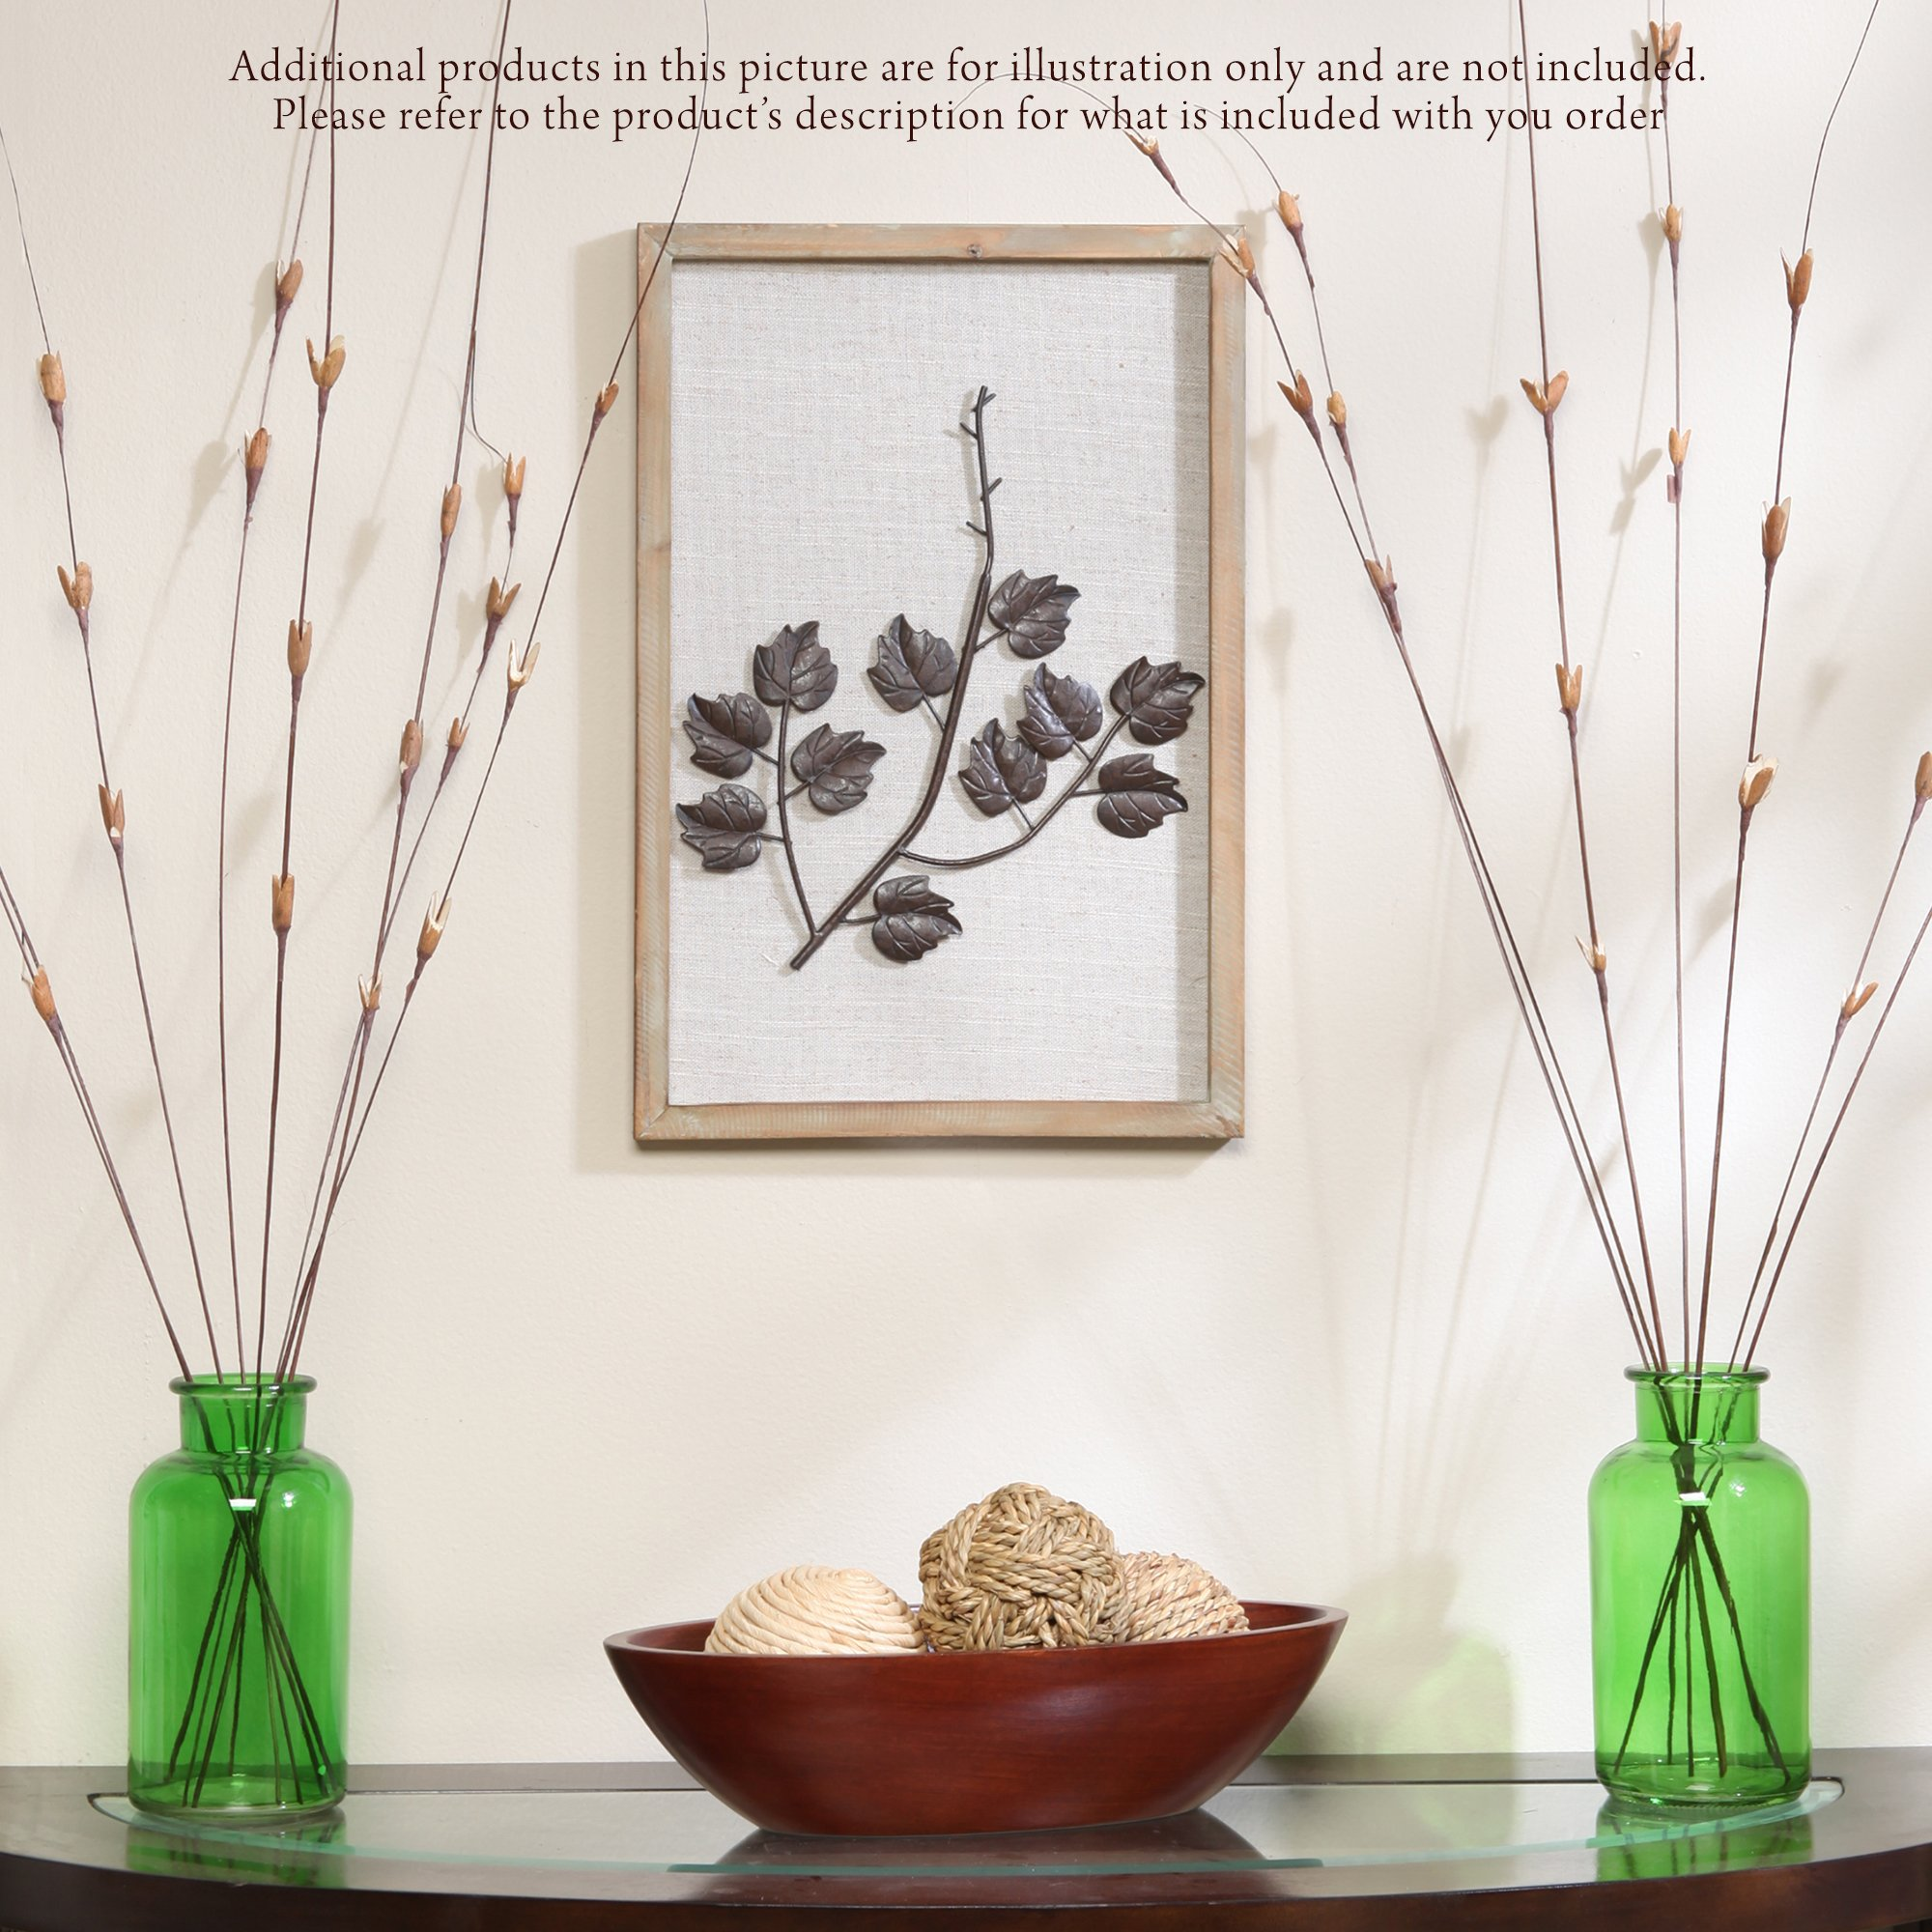 Hosley's Leaf Branches Wood & Metal Wall Decor in a Frame. Ideal Gift for Home, Wedding, Party. Home Office, Spa O9